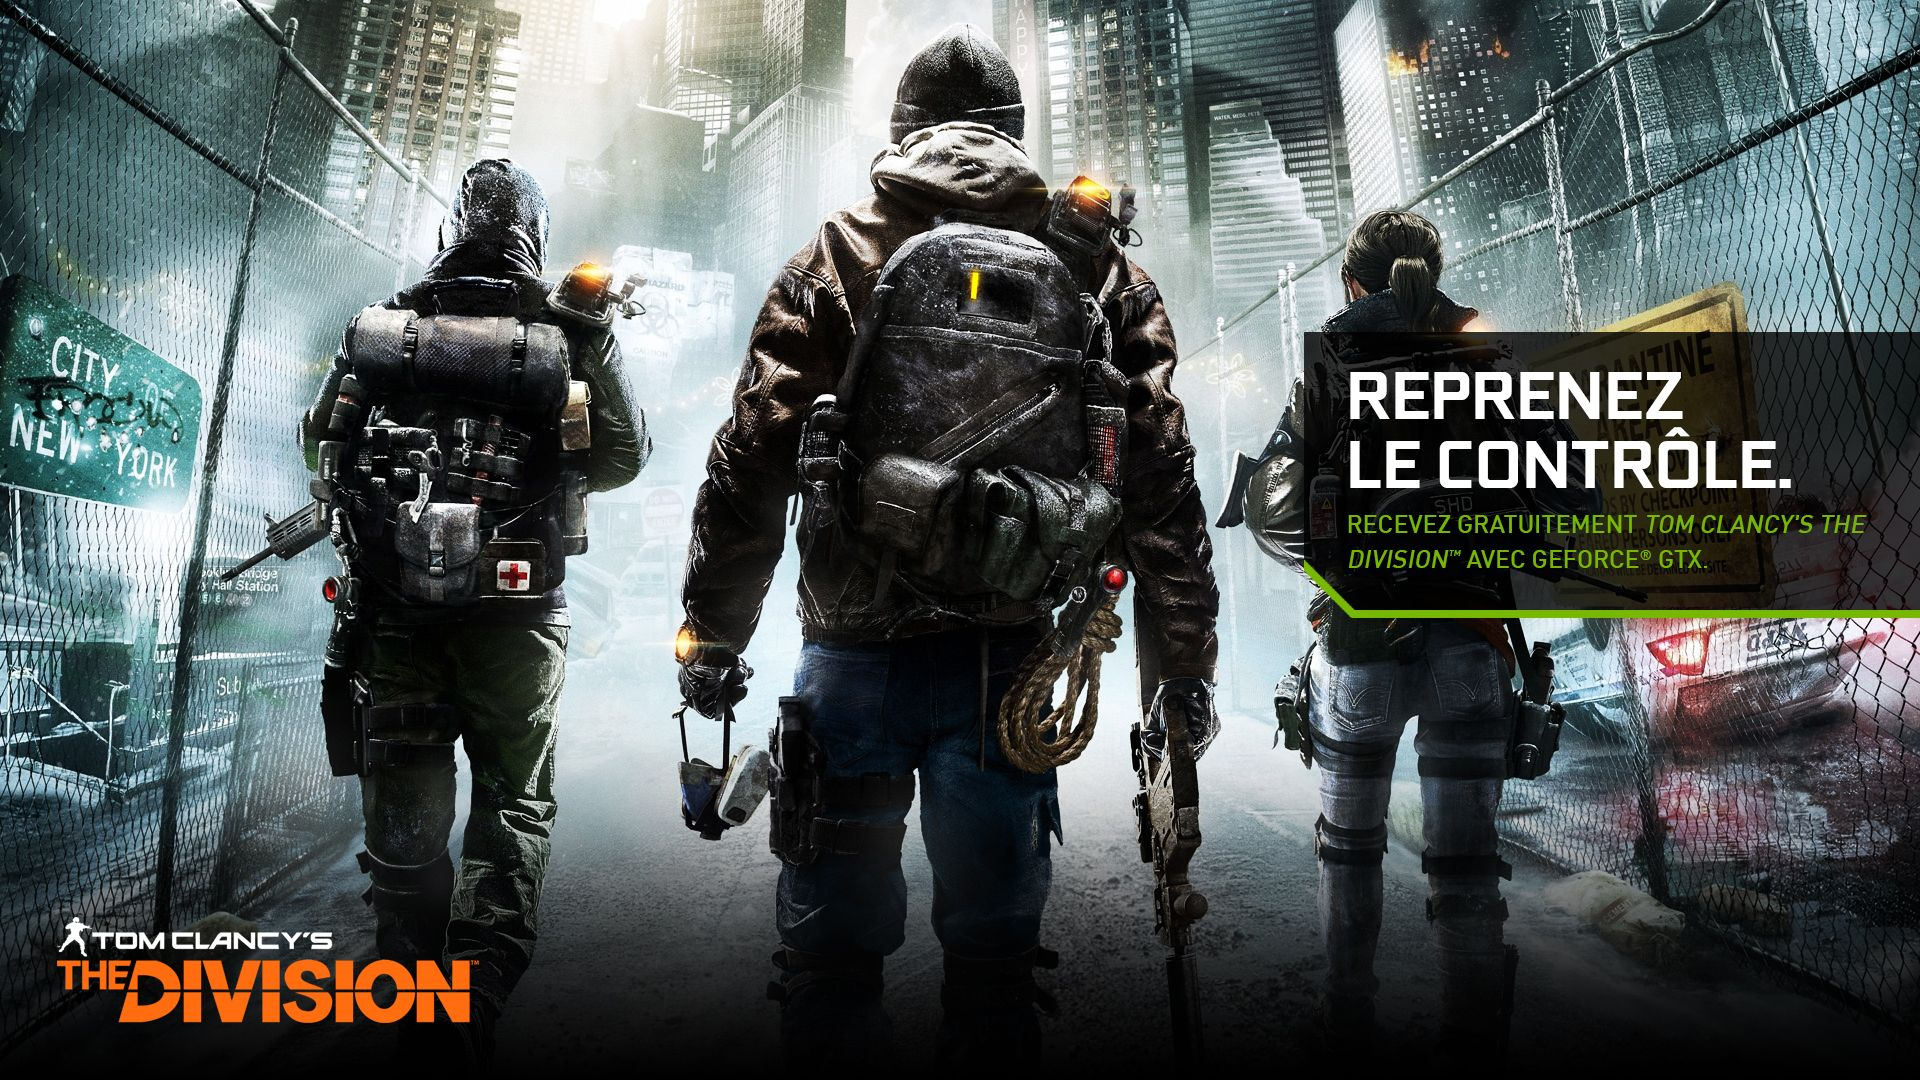 Tom Clancy's The Division, NVIDIA Campaign (Photoshop CC).